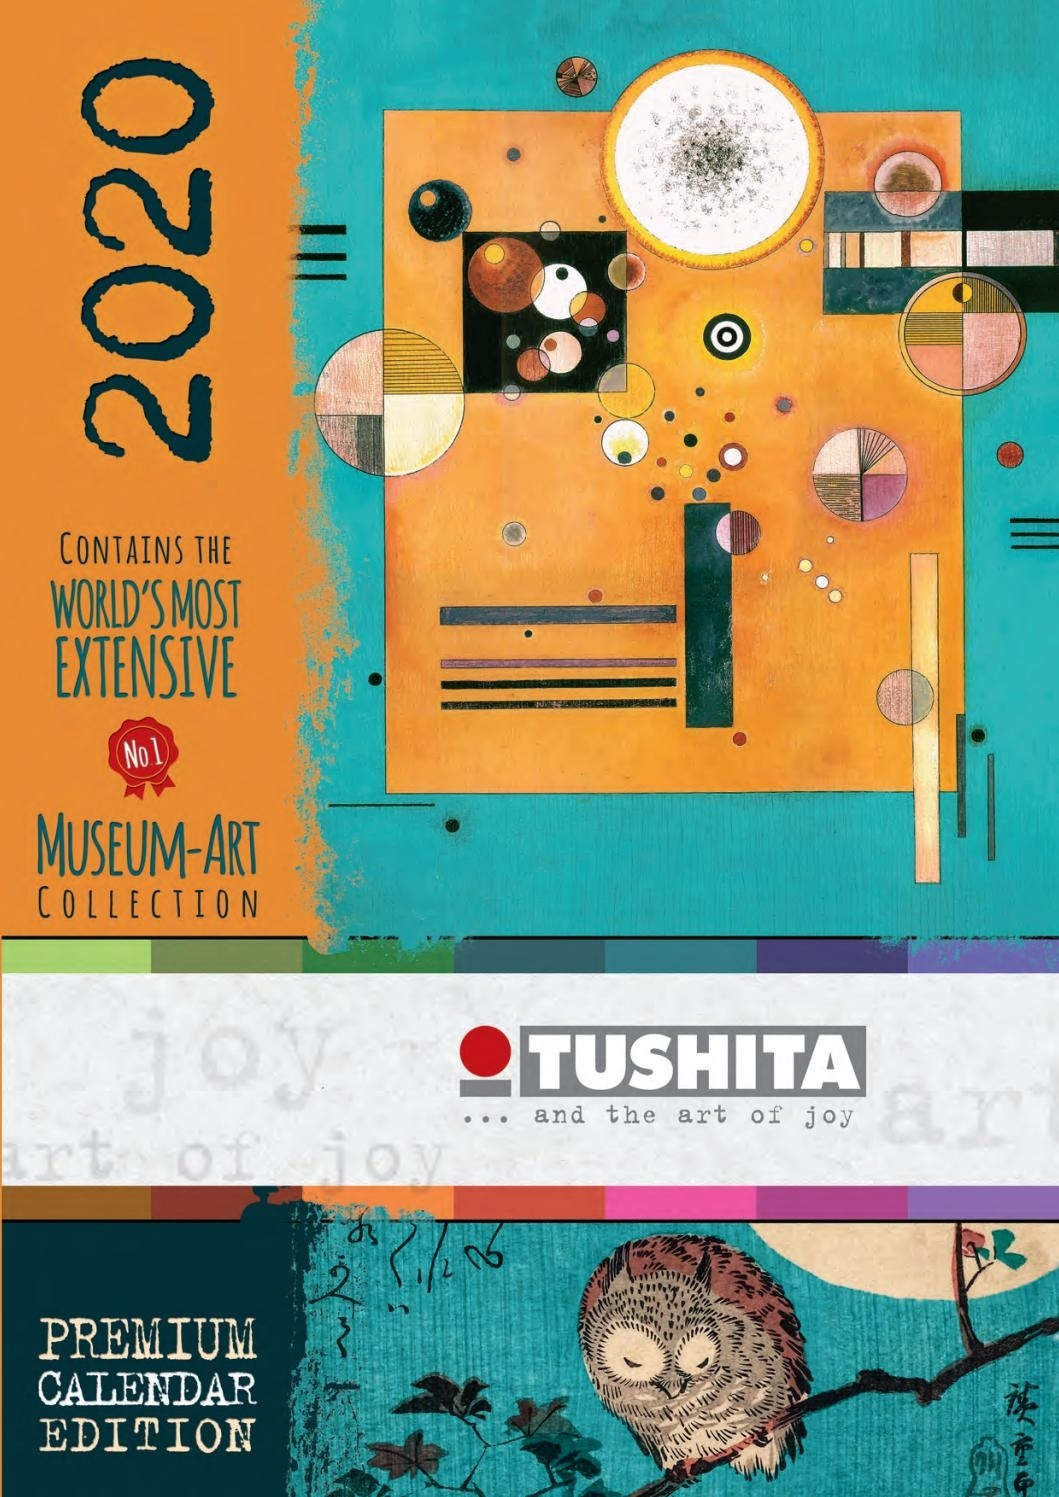 Image Connection 2020 Tushita Calendar Cataloglynn Mitchell intended for Delft School Calendar 2020